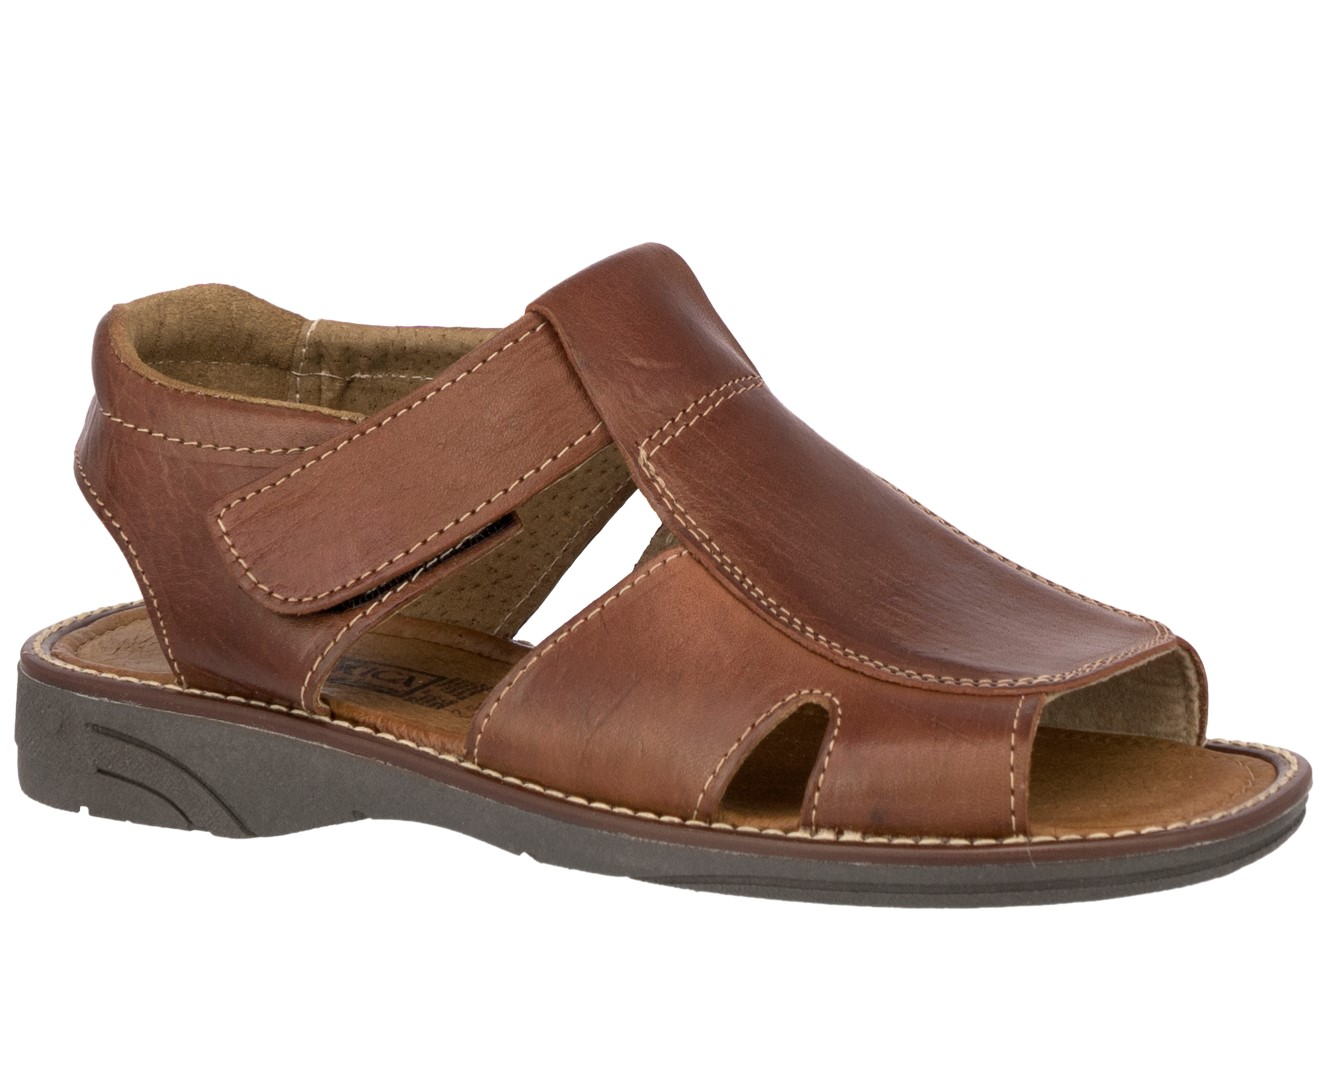 Mens Cognac Real Leather Fisherman Sandals Authentic Mexican Huaraches 1